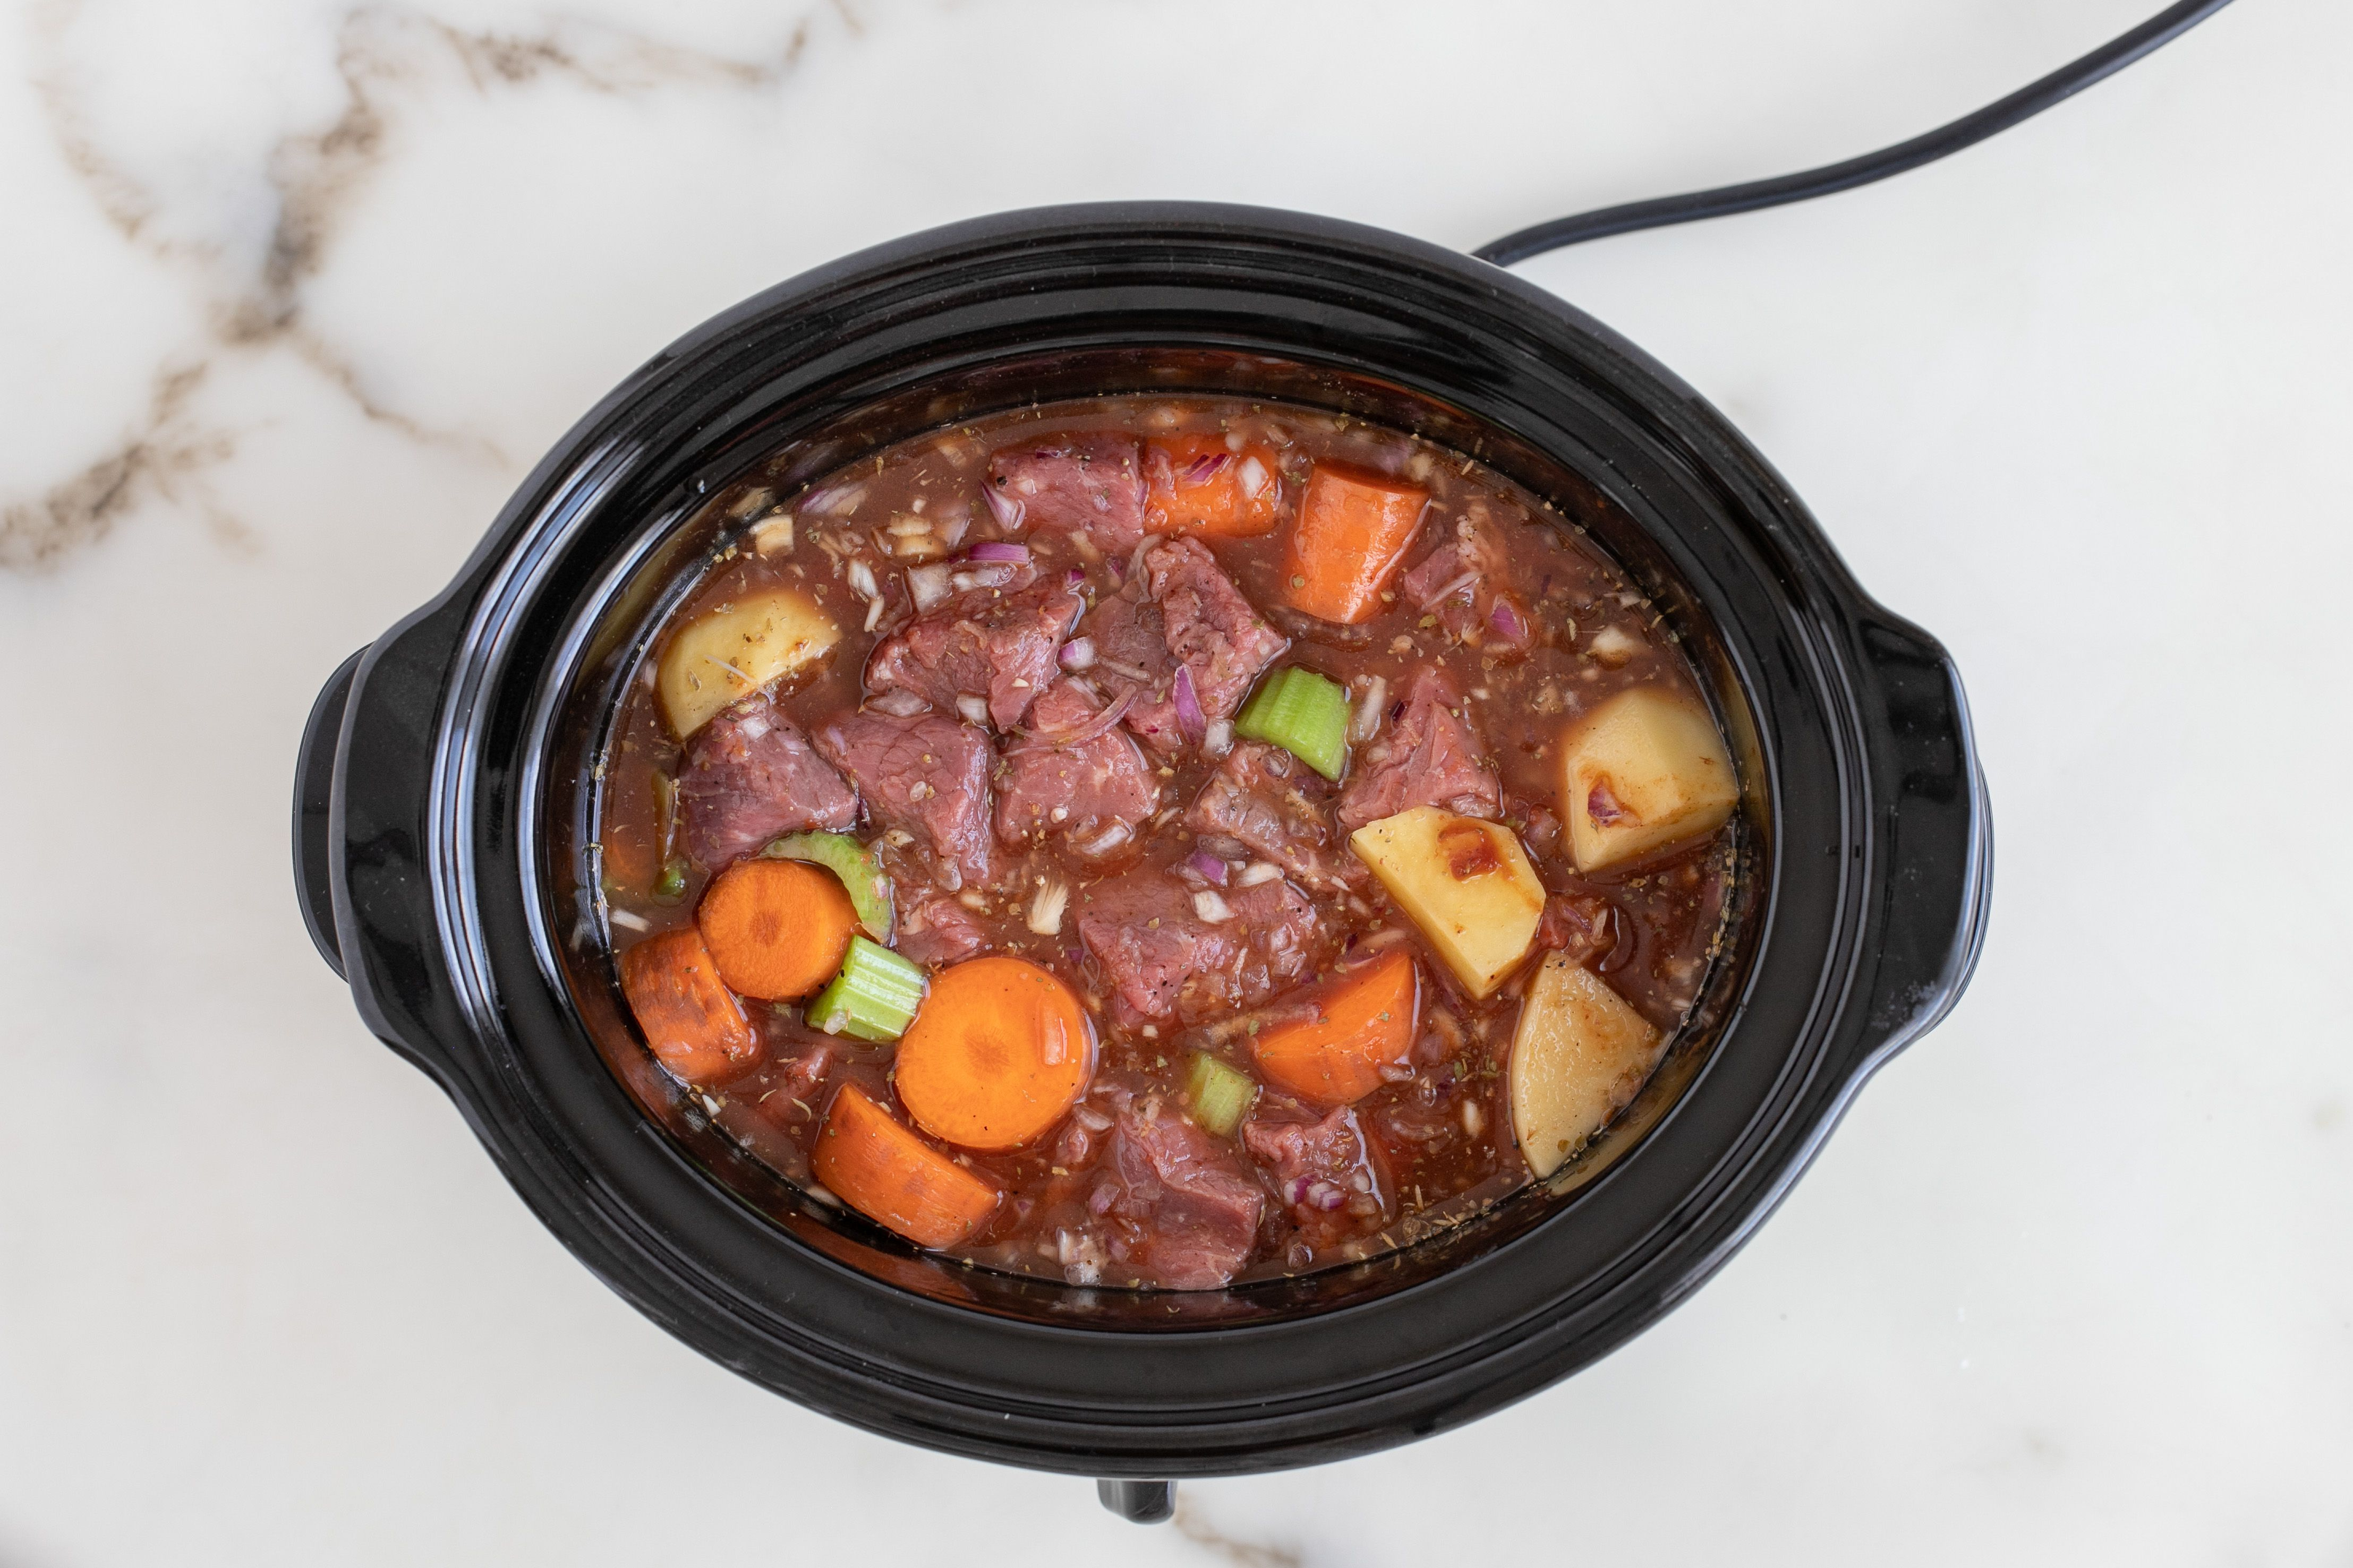 Slow cooker filled with ingredients